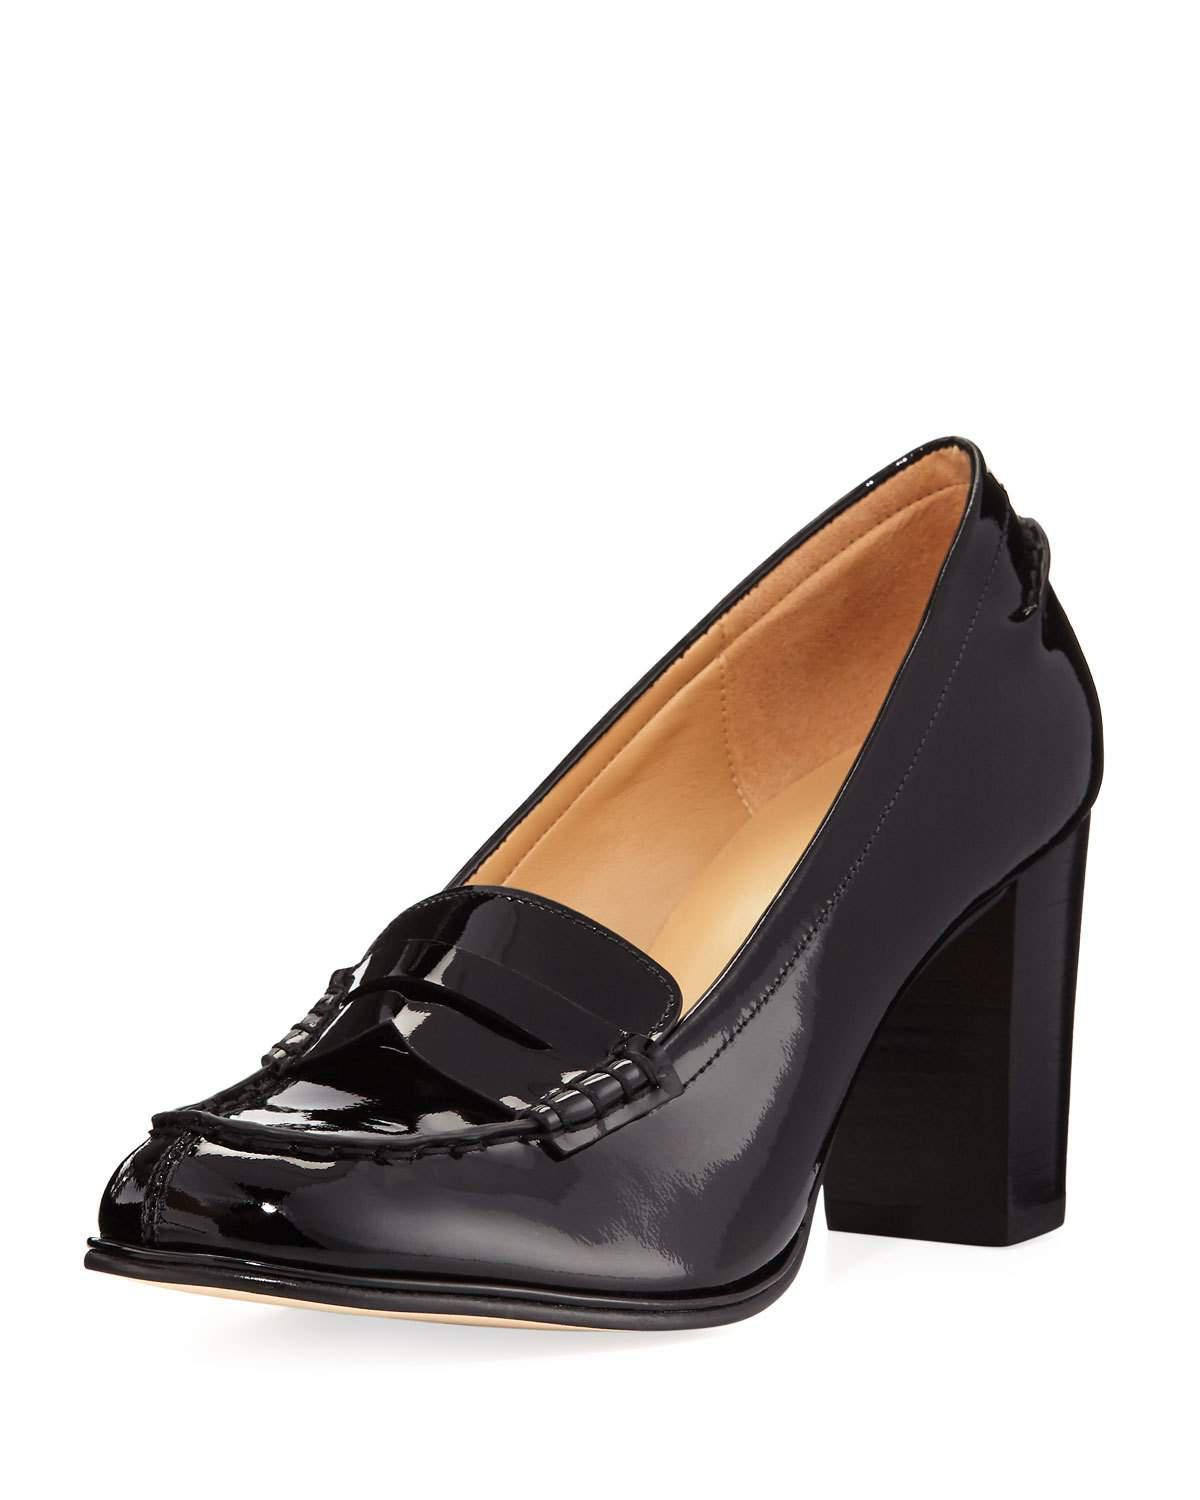 92f1b6ef665 Lyst - MICHAEL Michael Kors Bayville Patent Leather Loafer Pump in Black